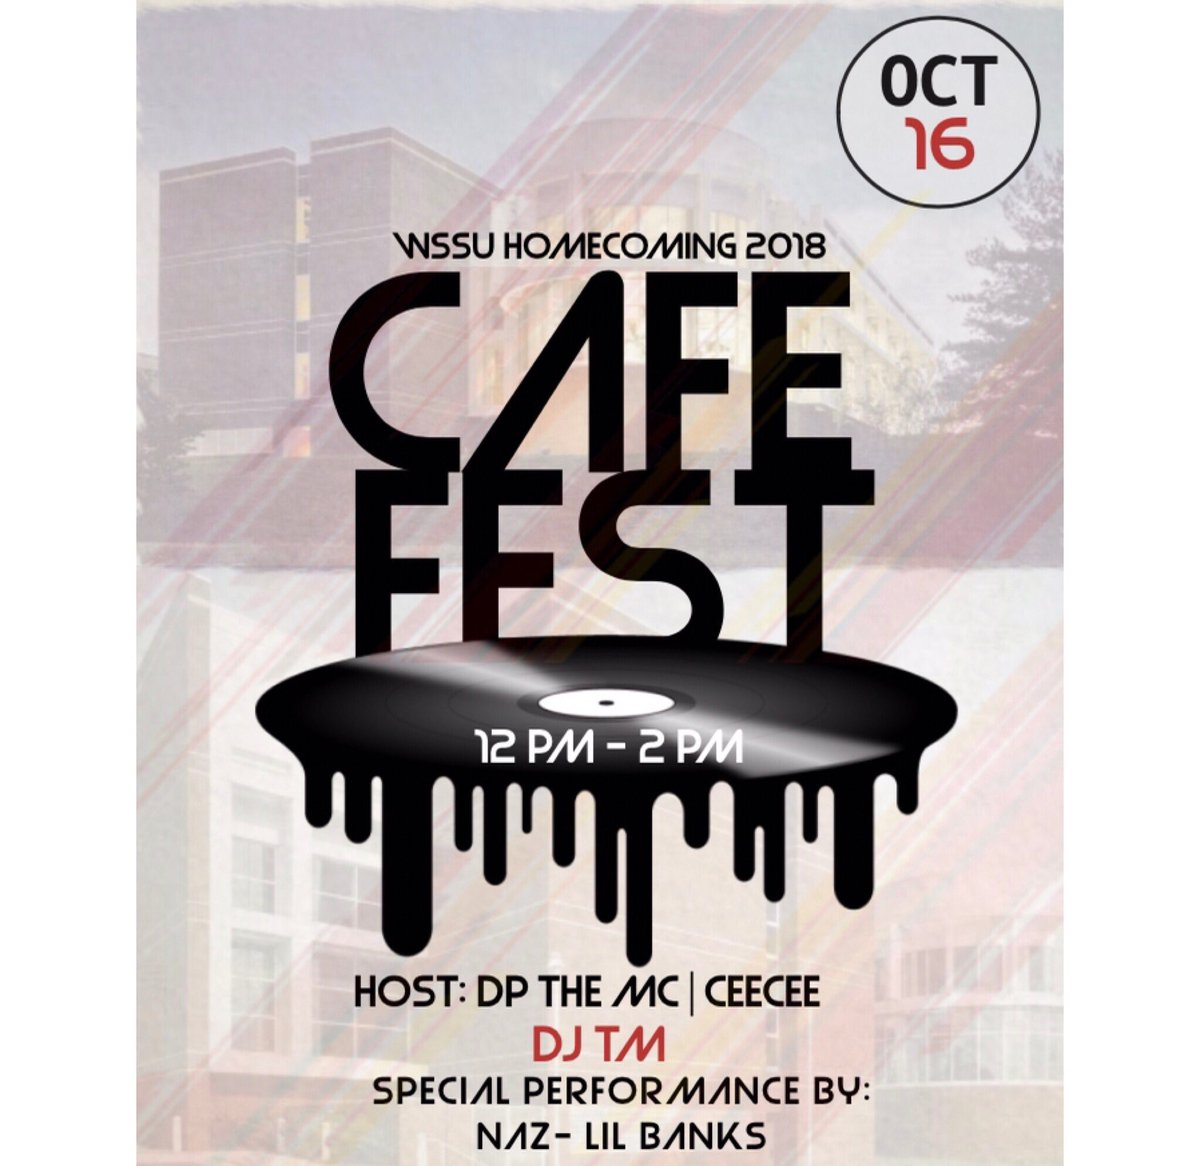 TUESDAY, OCTOBER 16TH  #CAFEFEST IS BACKKKKKKK  12PM-2PM  MUSIC BY @iAmDJTM  HOSTED BY @YourztrulyCee & @DPtheMC   THAT NIGHT @WSSURAMS ALUMNI ARE BRIDGING THE GAP  DIGGS GALLERY   8PM